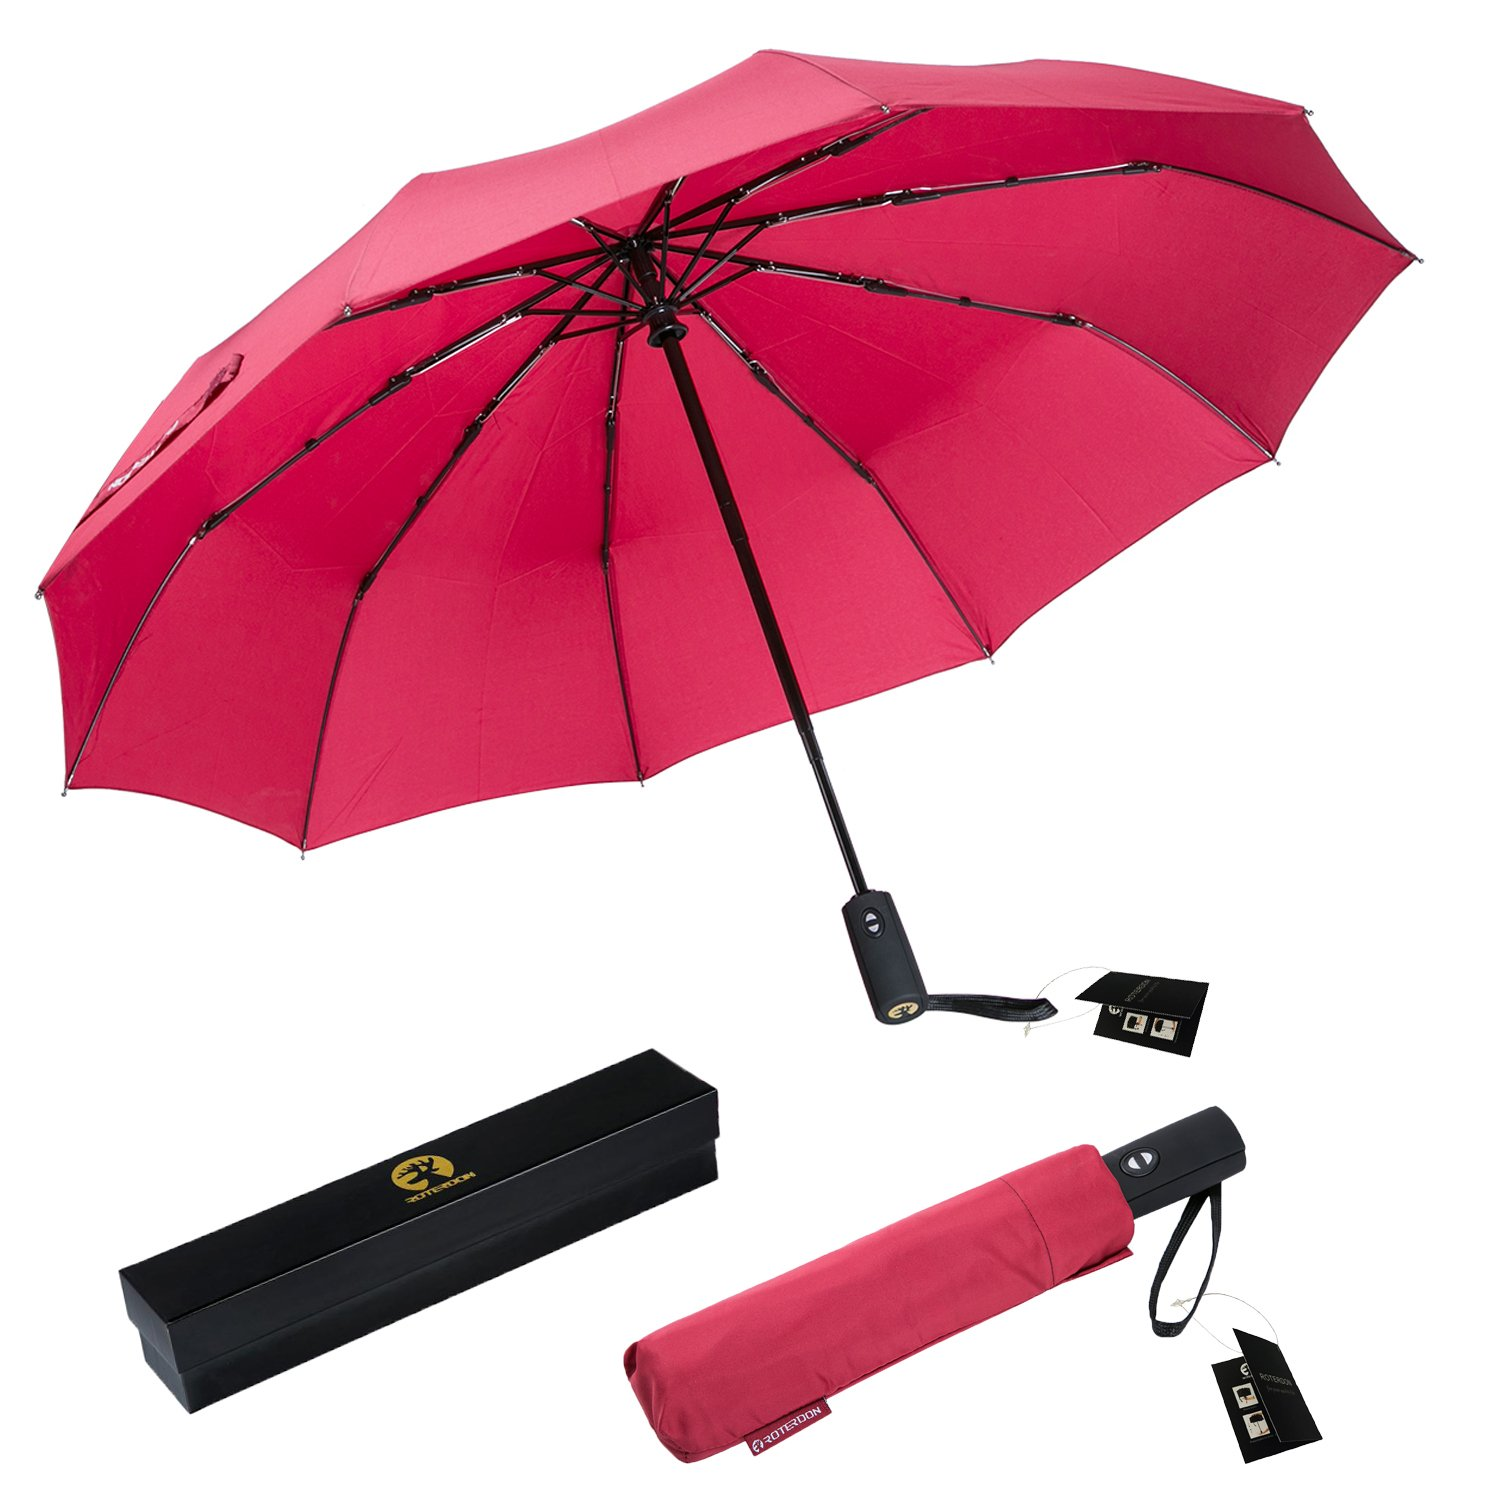 ROTERDON Windproof Travel Umbrella Folding - Small Compact Umbrella with Teflon Coating Auto Open/Close Reinforced Canopy Waterproof Pack for Luggage,Red by ROTERDON (Image #6)